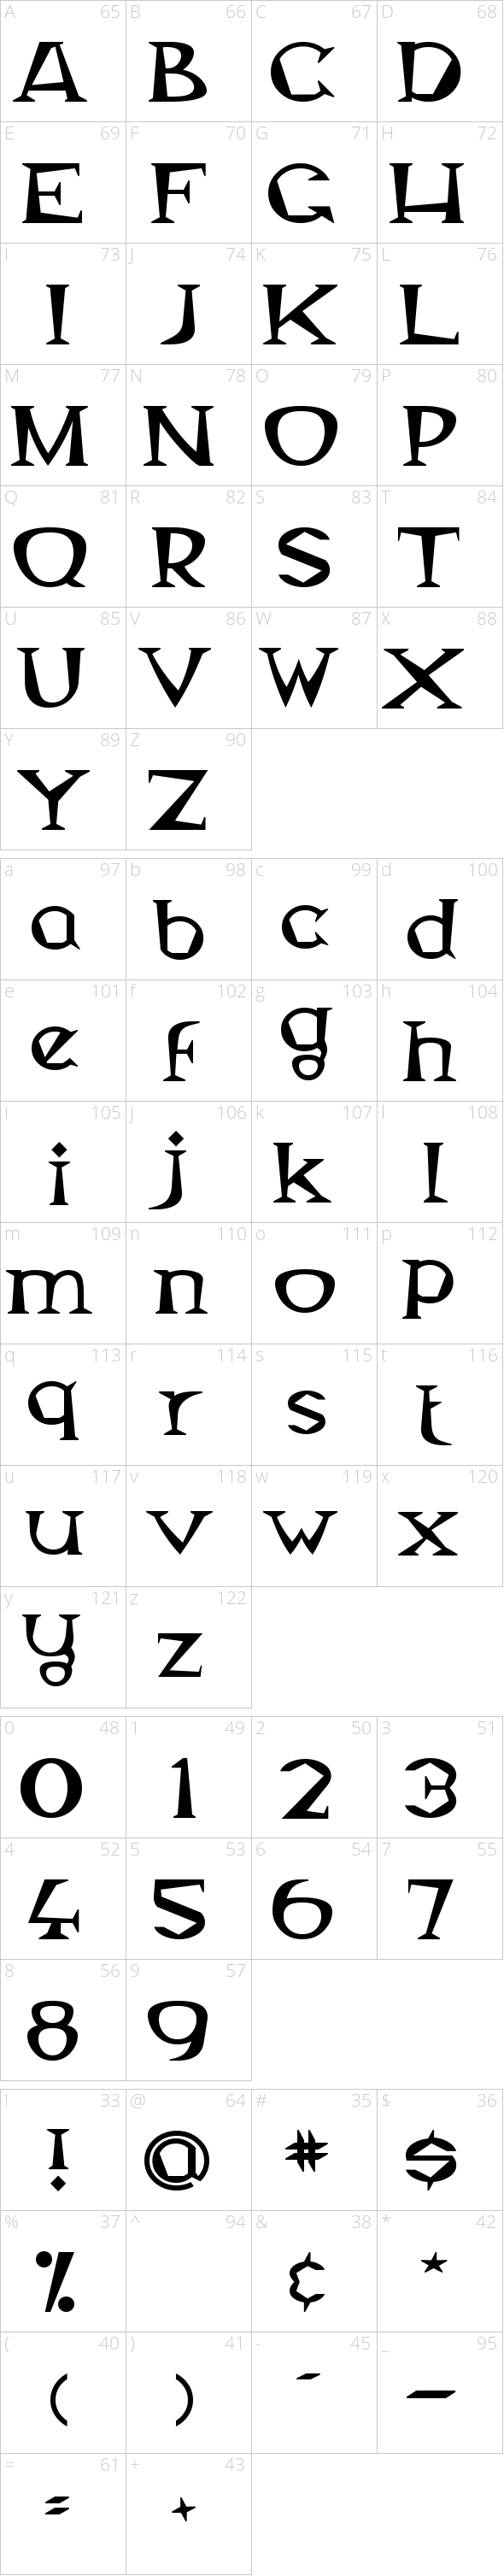 Character map for the font Magyar Serif